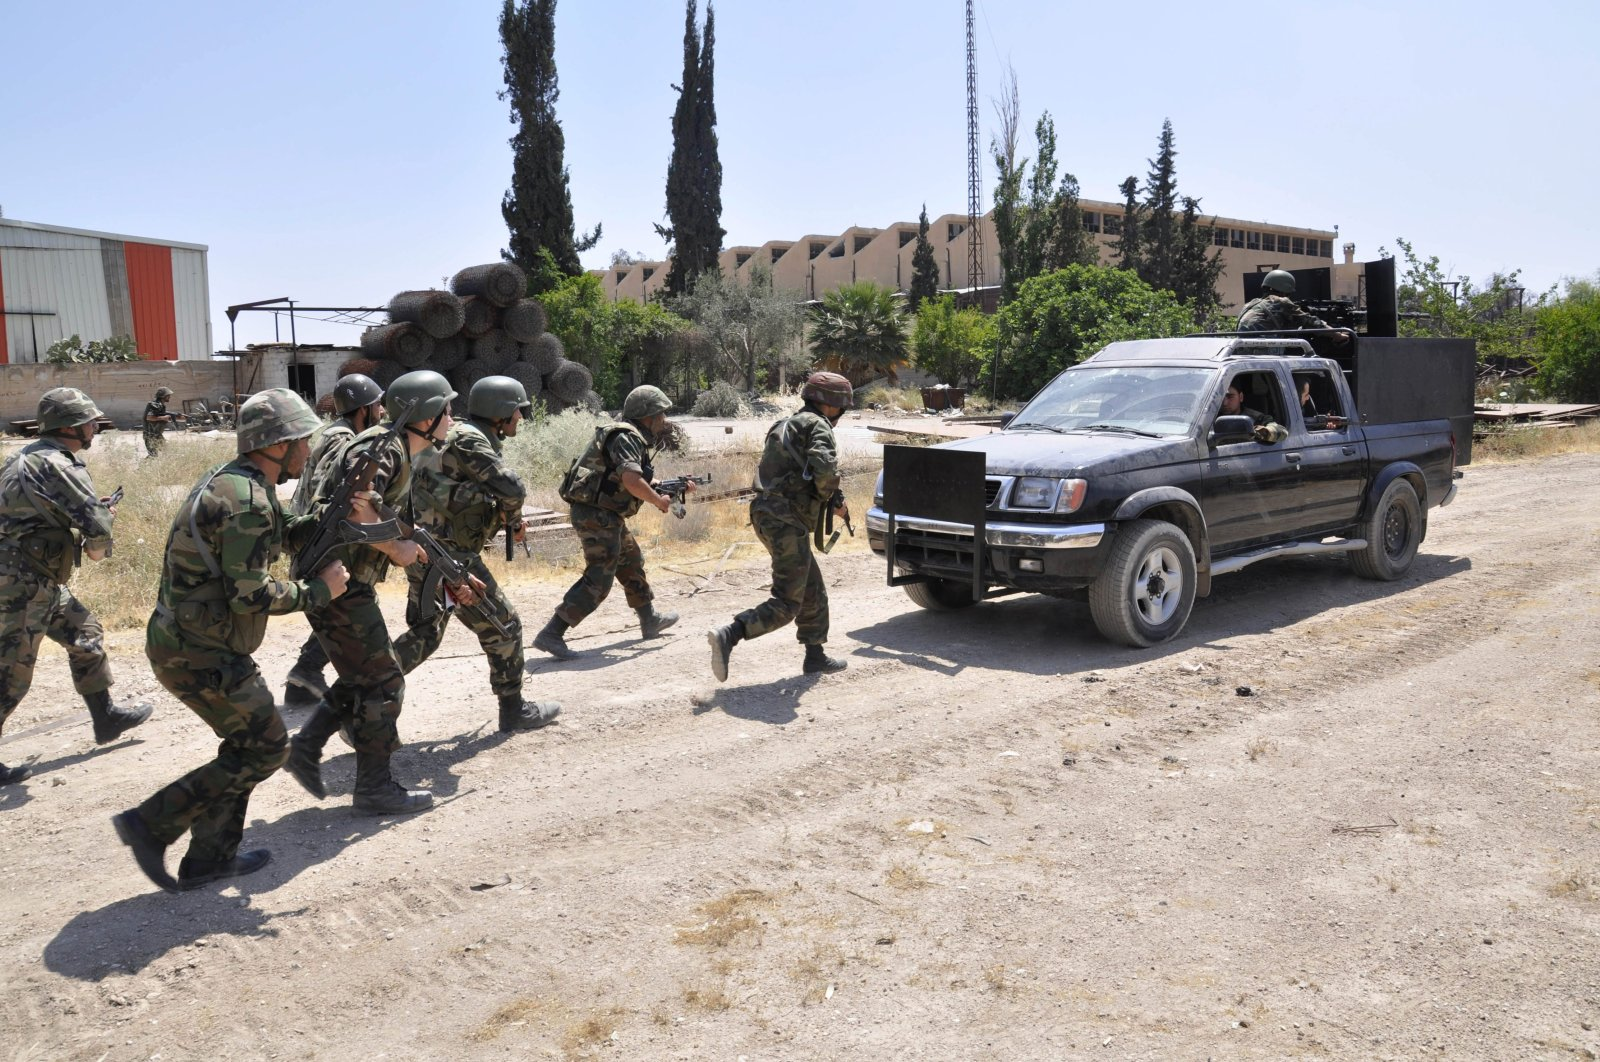 In this file photo released on Sunday, May 26, 2013, by the Syrian official news agency SANA, Syrian forces loyal to Bashar Assad take their position during clashes in Aleppo, Syria. (AP Photo)